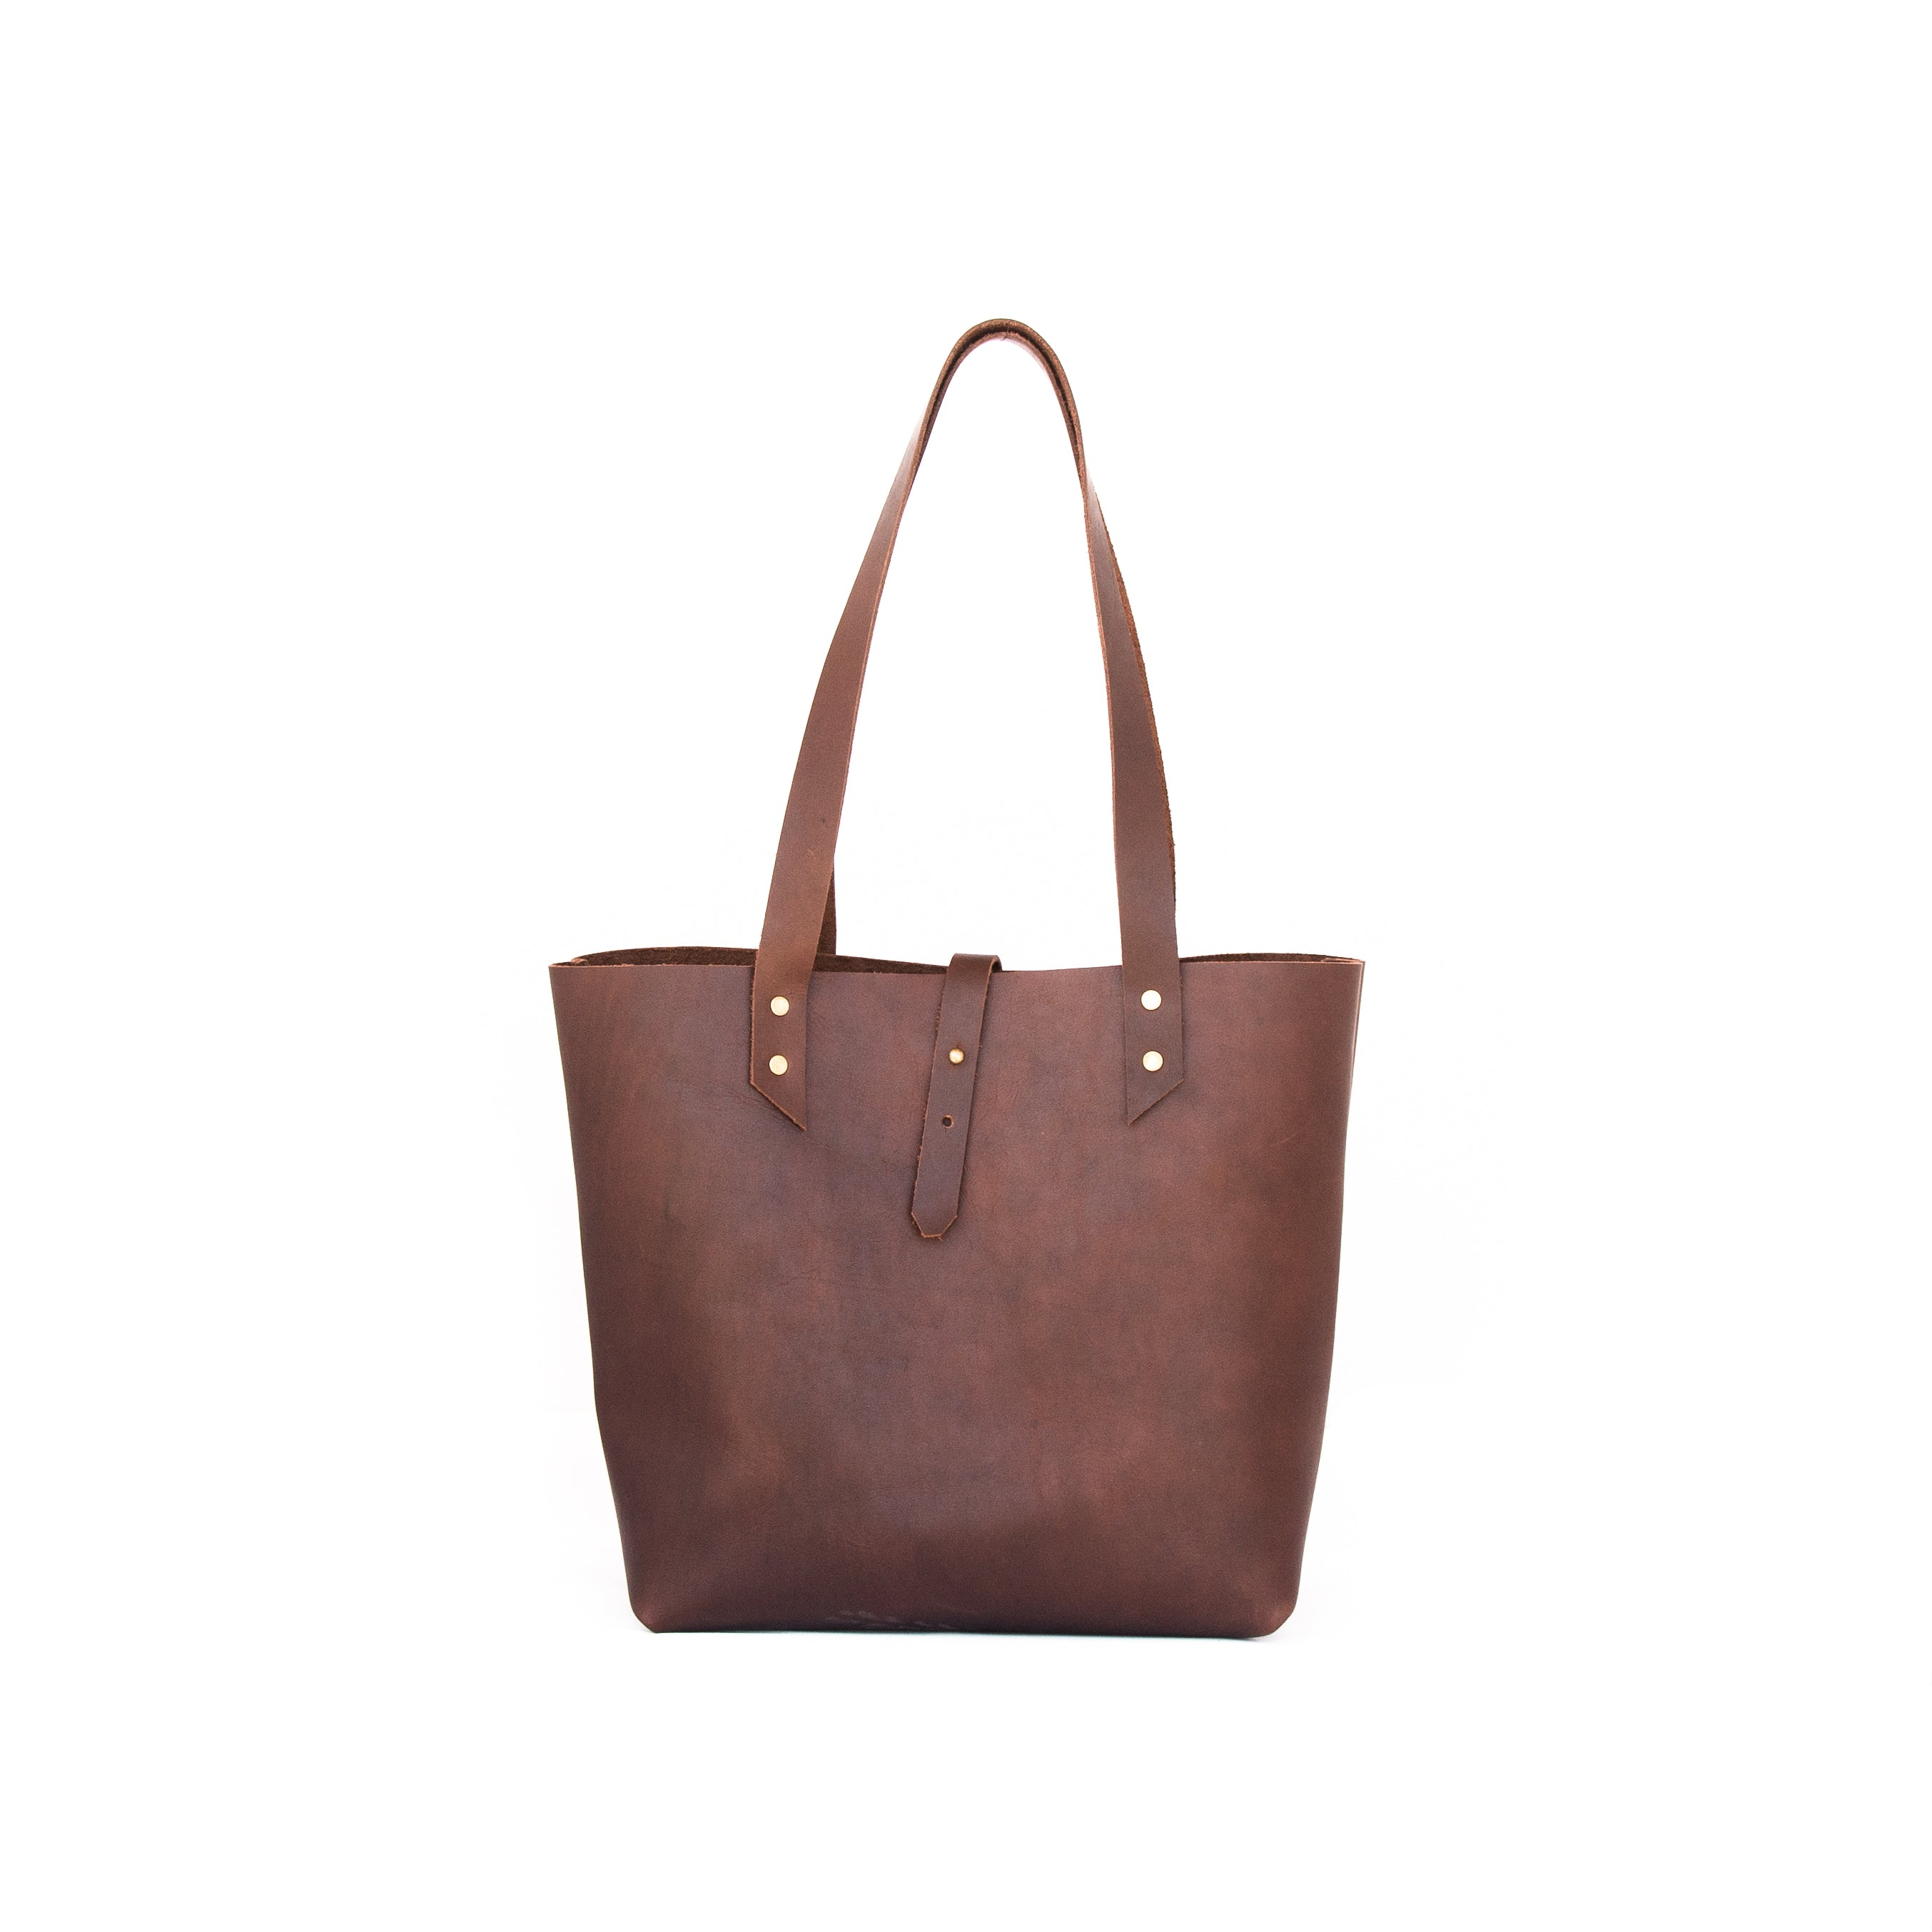 Classic Tote Leather - handcrafted by Market Canvas Leather in Tofino, BC, Canada